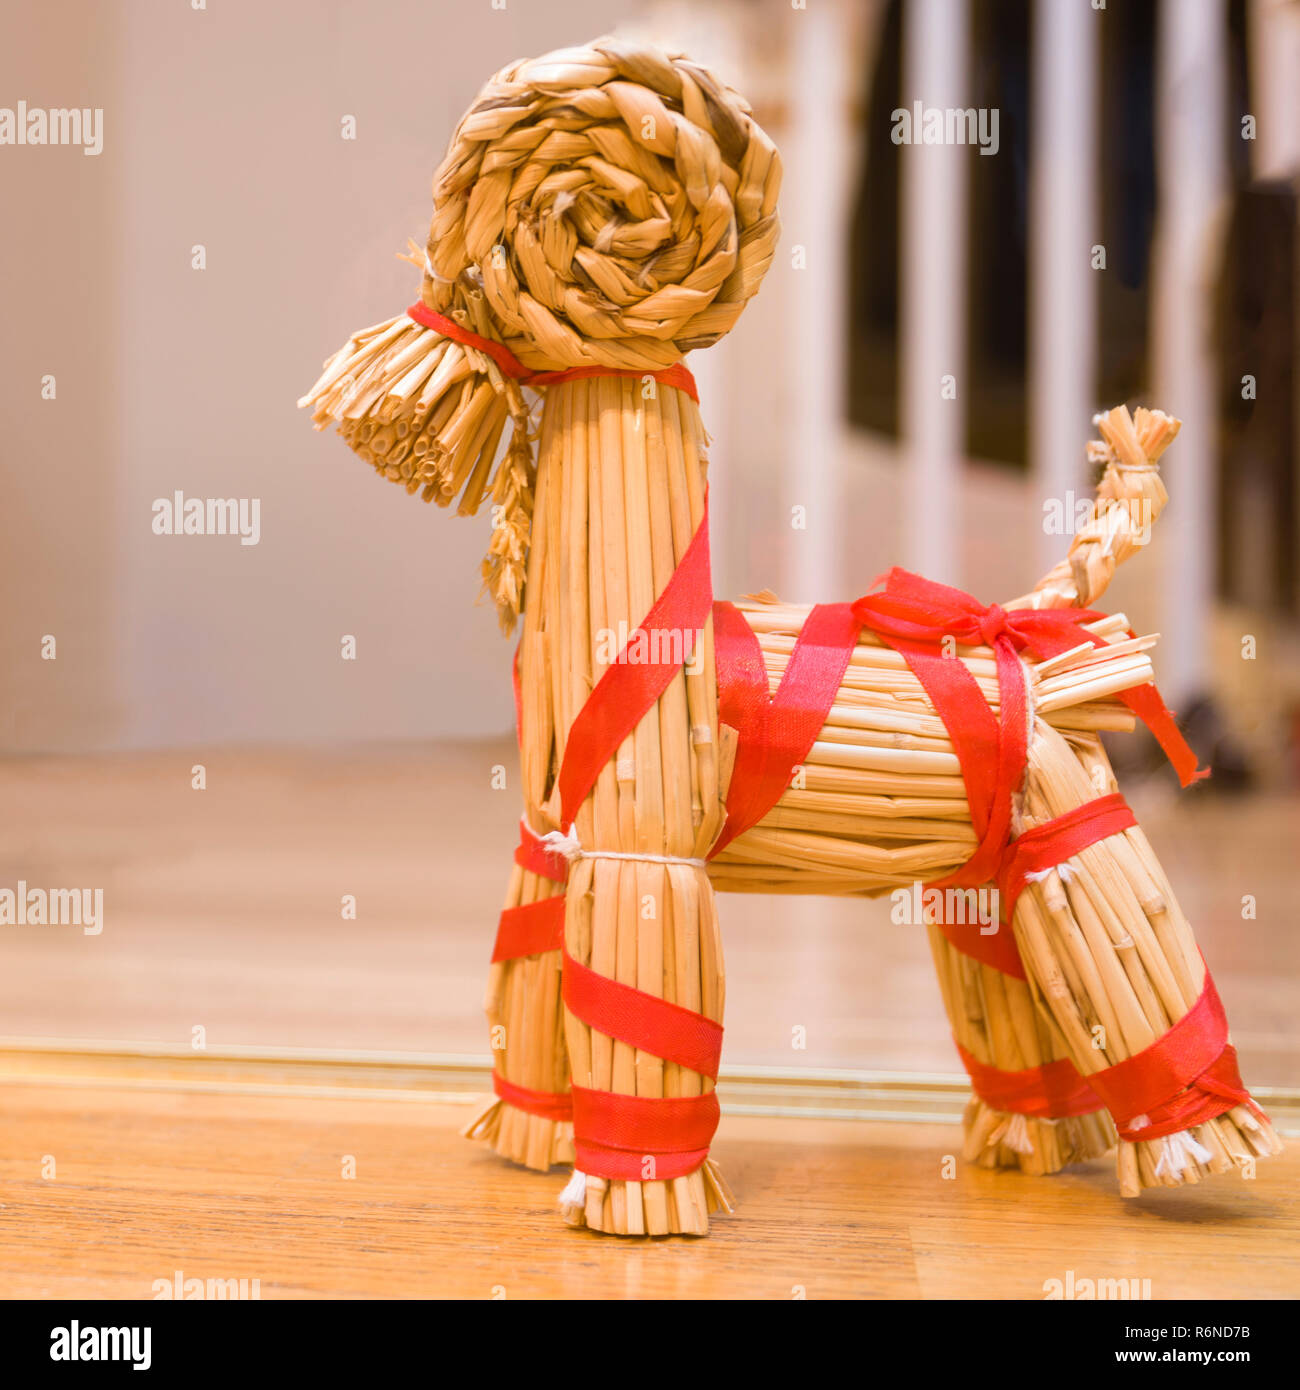 FLODA, SWEDEN - NOVEMBER 28 2018: Close up view of typical Swedish handmade straw Christmas ornament Yule goat decorated with red ribbon - Stock Image